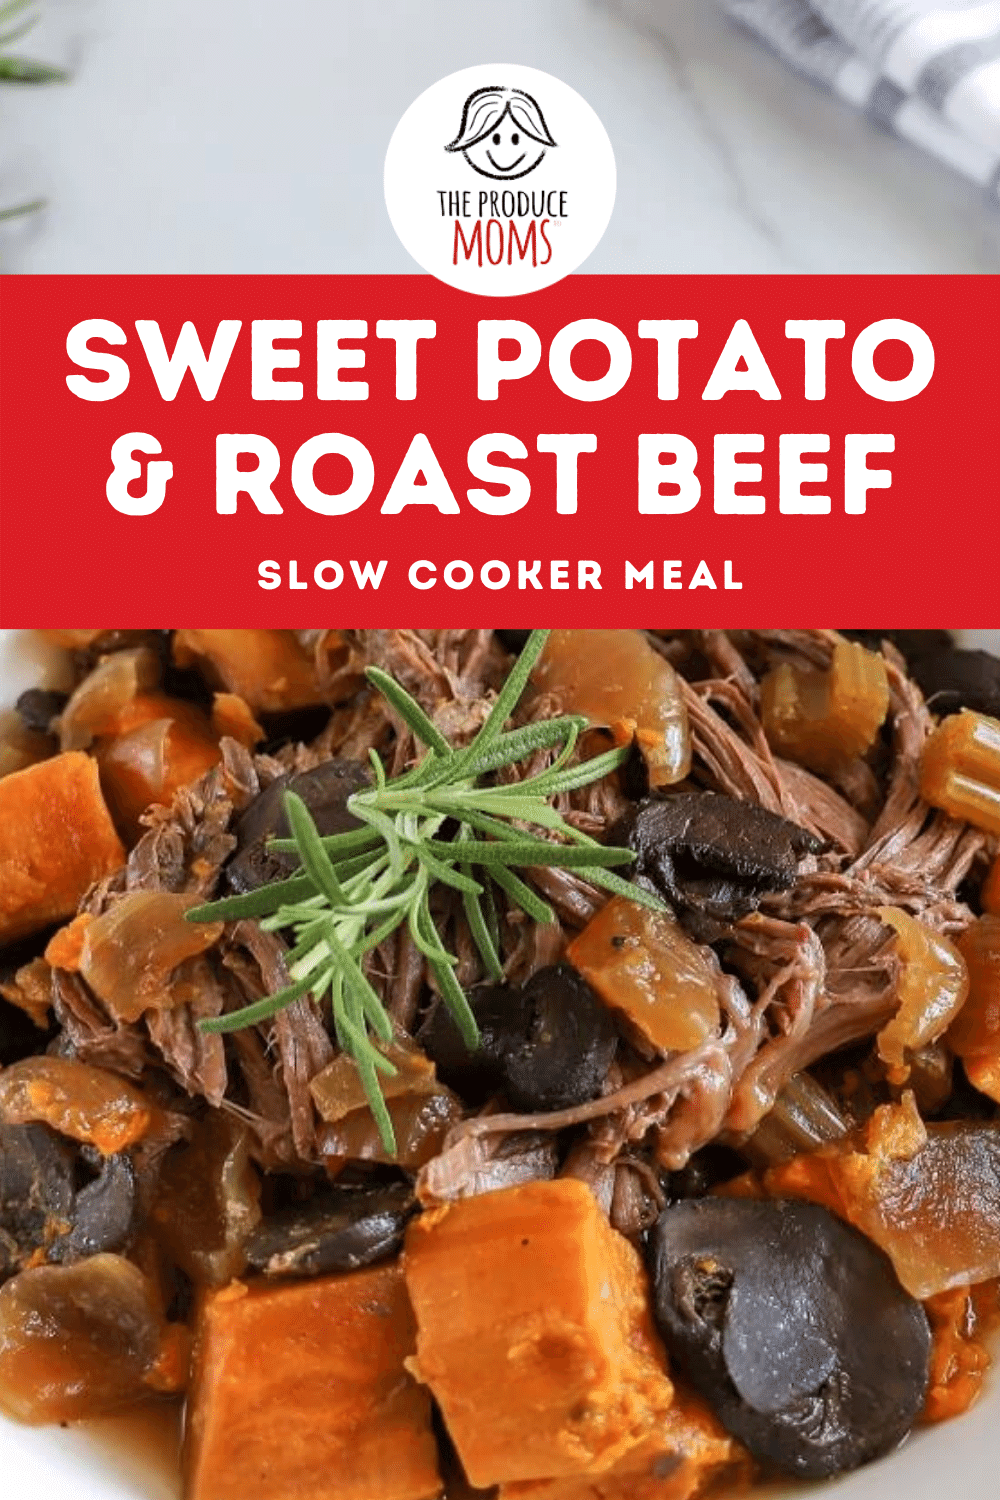 Sweet Potato and Roast Beef Slow Cooker Meal